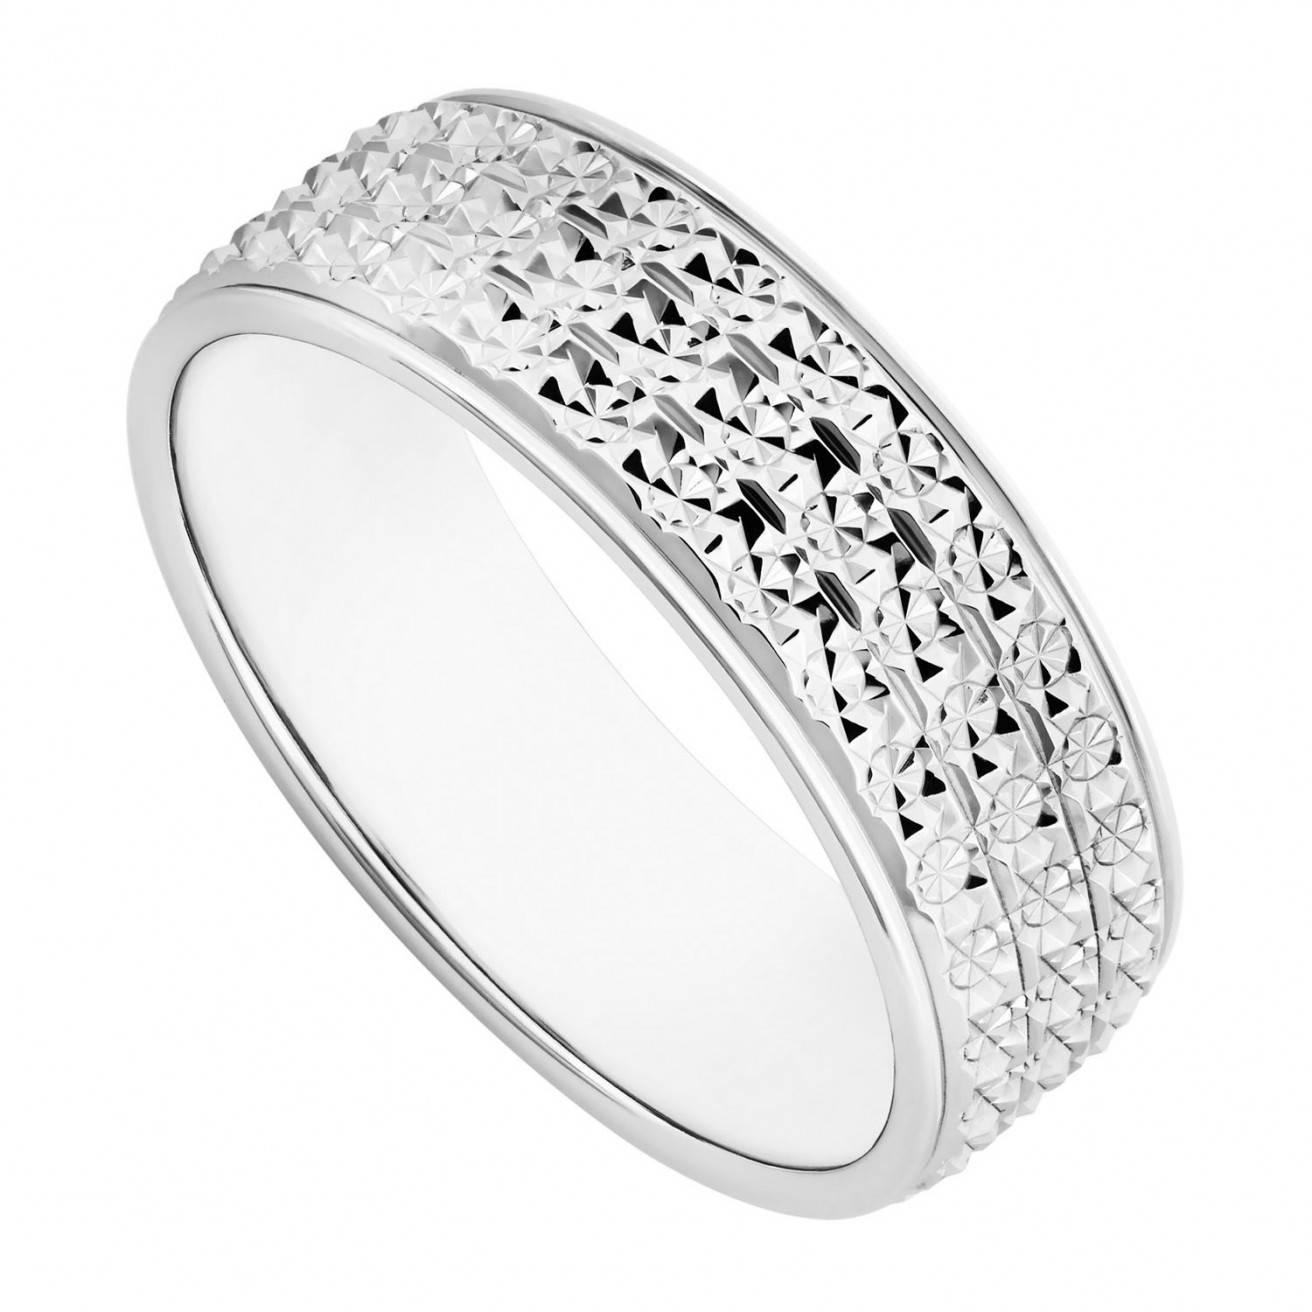 Buy White Gold Wedding Rings Online – Fraser Hart With Regard To White Gold Diamond Cut Wedding Rings (View 7 of 15)